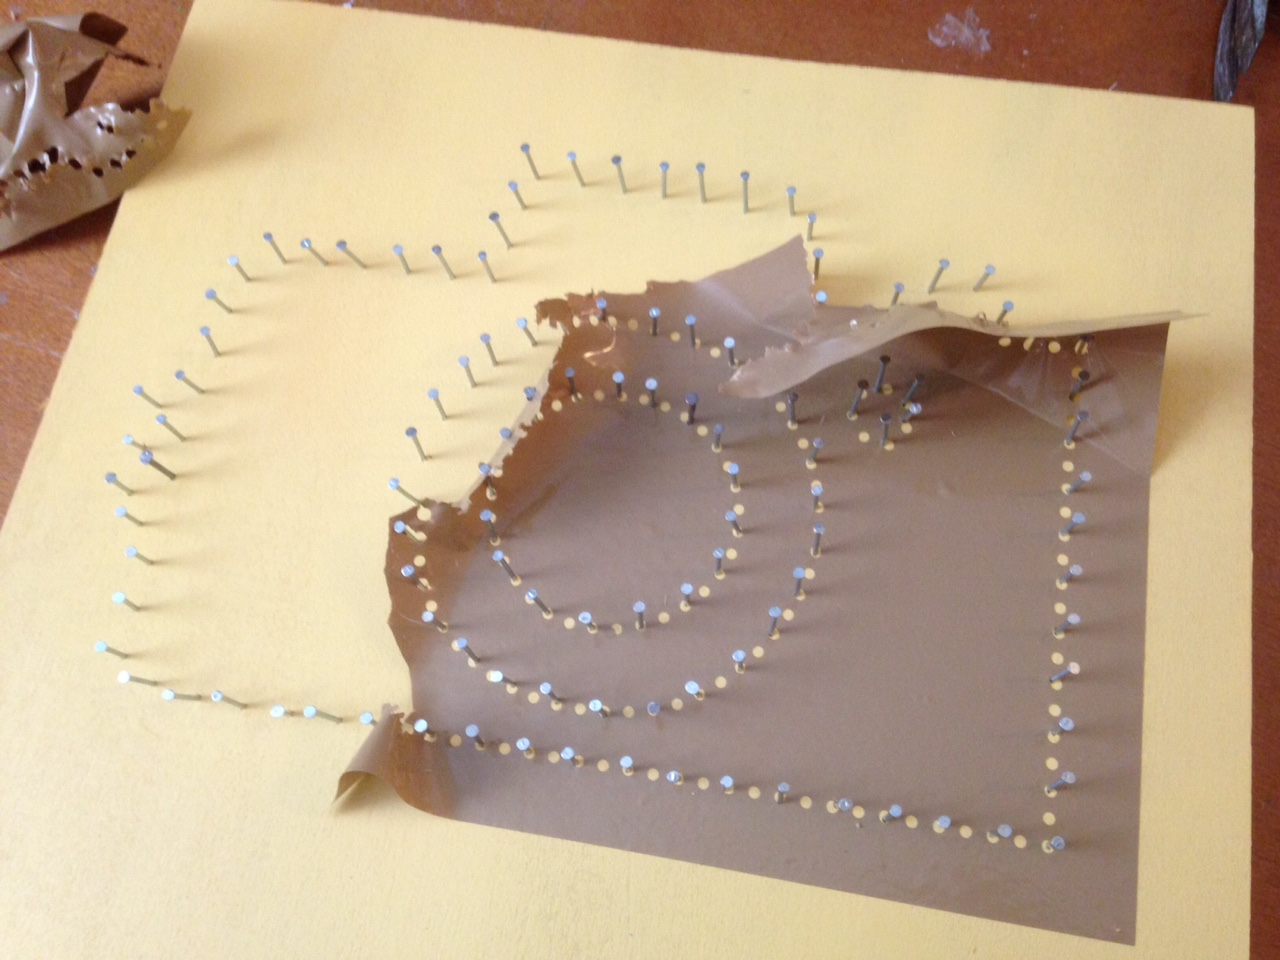 How To Make String Art Patterns With Silhouette Silhouette School